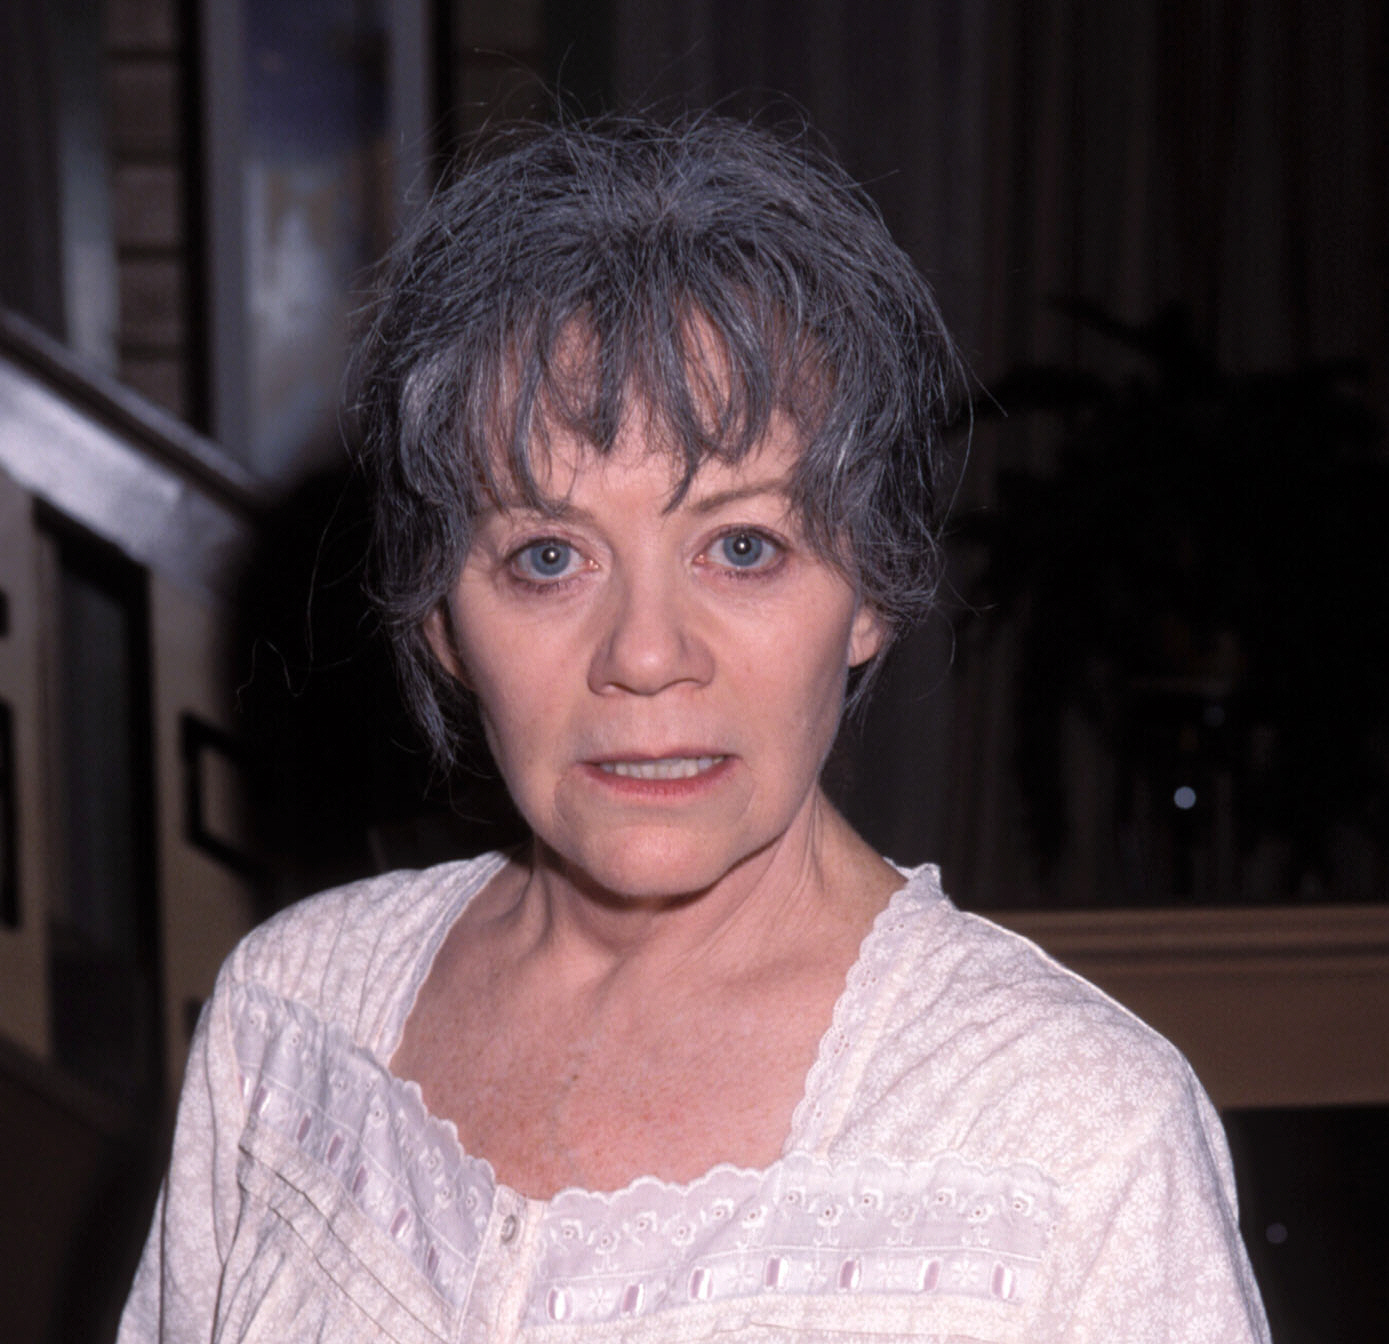 Kathleen Noone born January 8, 1945 (age 73)